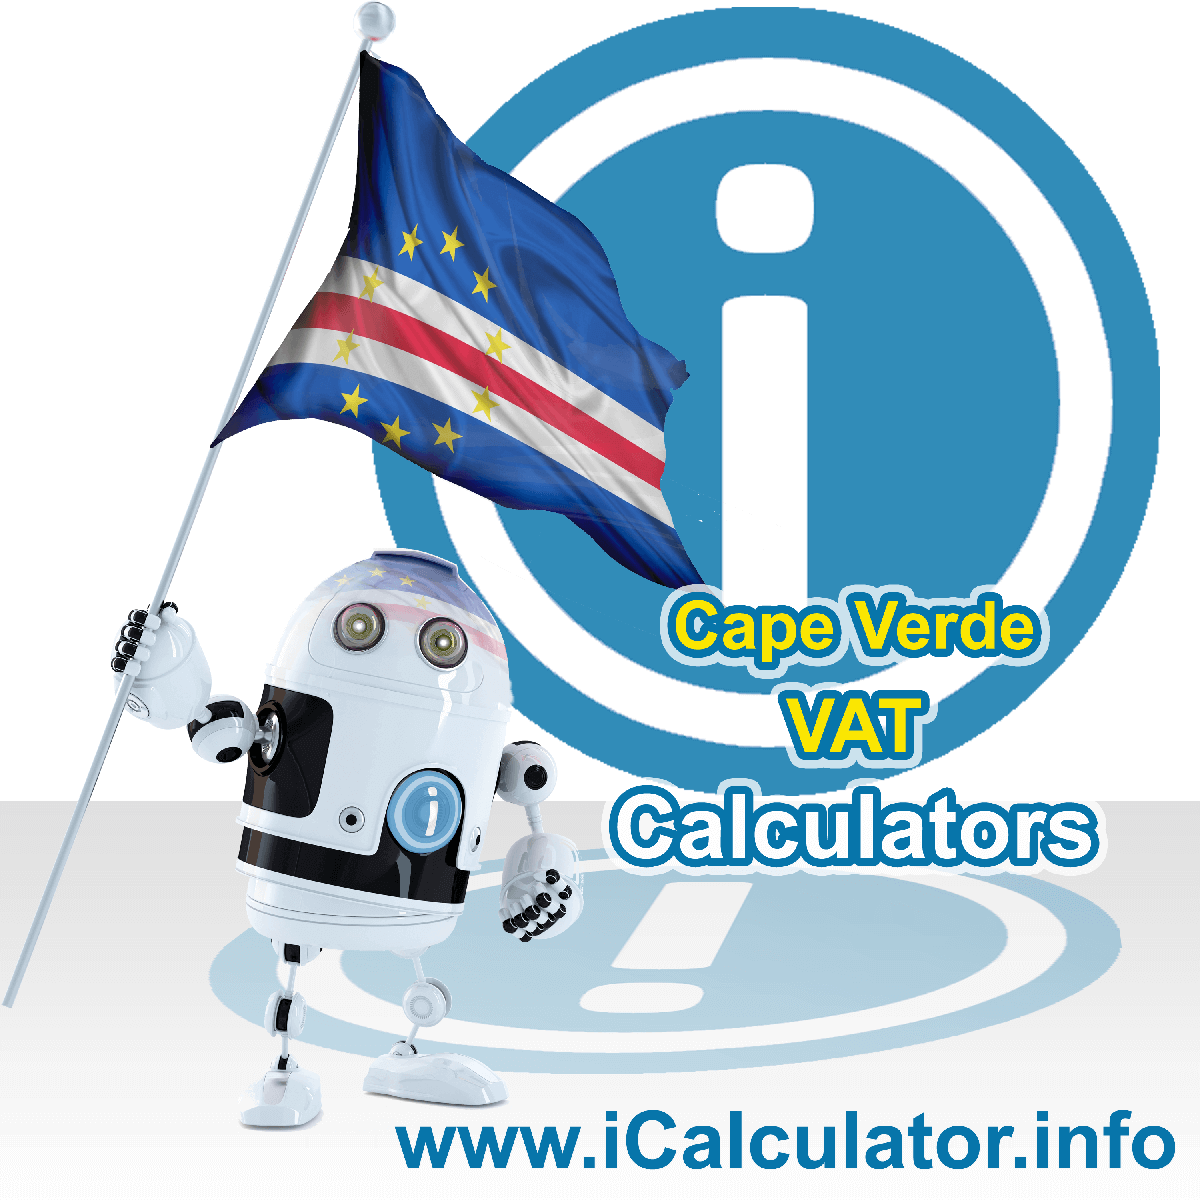 Cape Verde VAT Calculator. This image shows the Cape Verde flag and information relating to the VAT formula used for calculating Value Added Tax in Cape Verde using the Cape Verde VAT Calculator in 2020